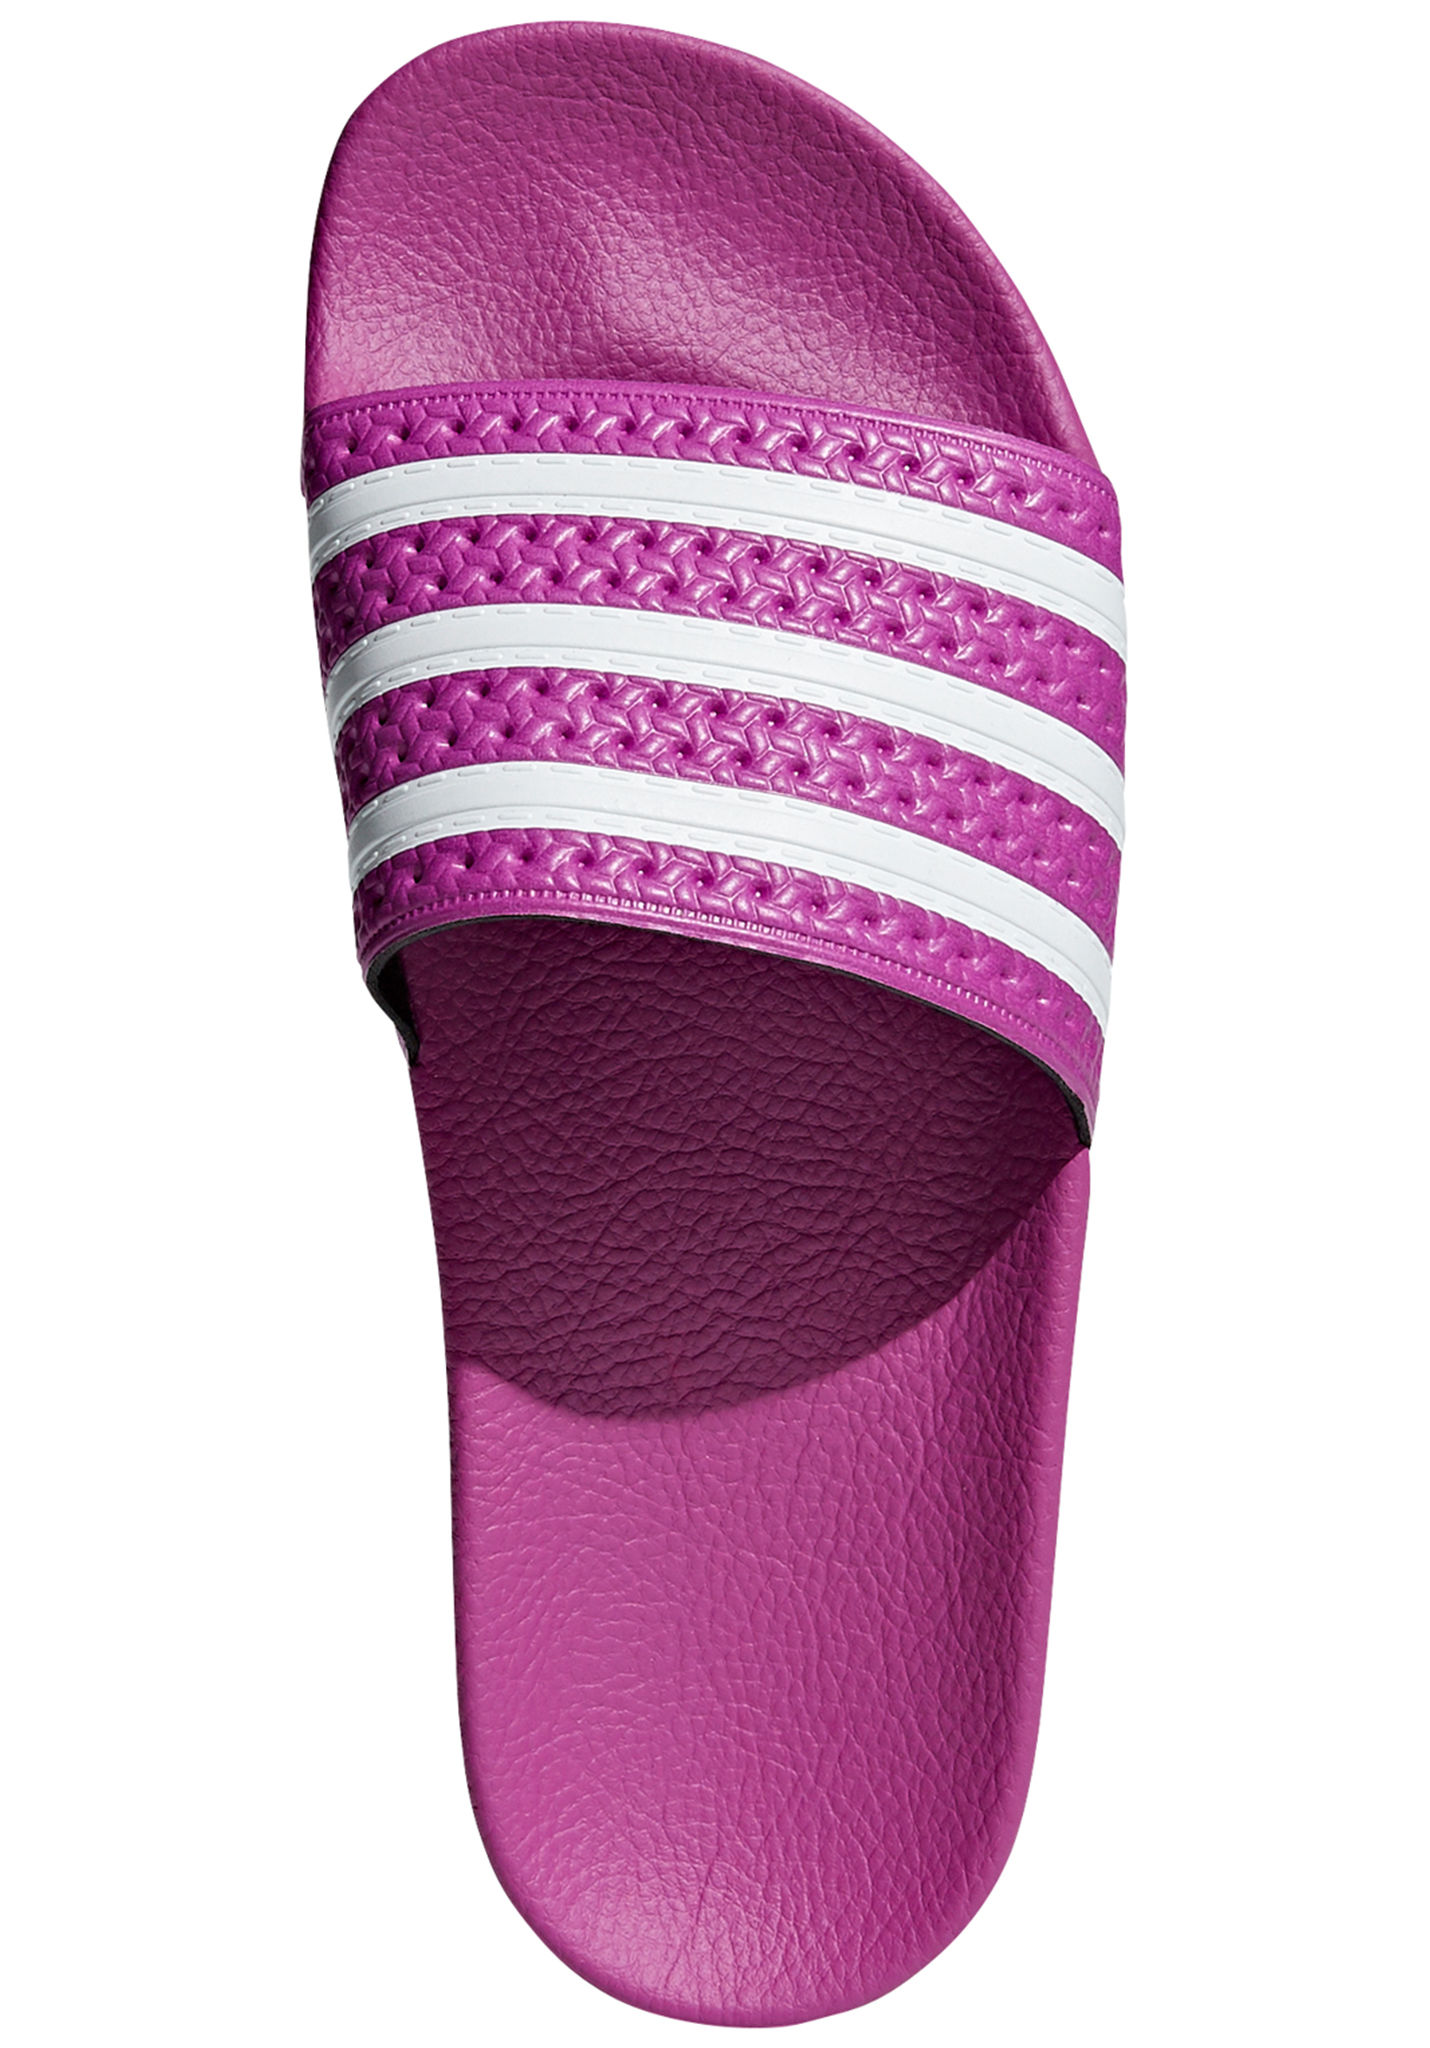 ADIDAS ORIGINALS Adilette - Sandals for Women - Pink - Planet Sports 981a4d3a1